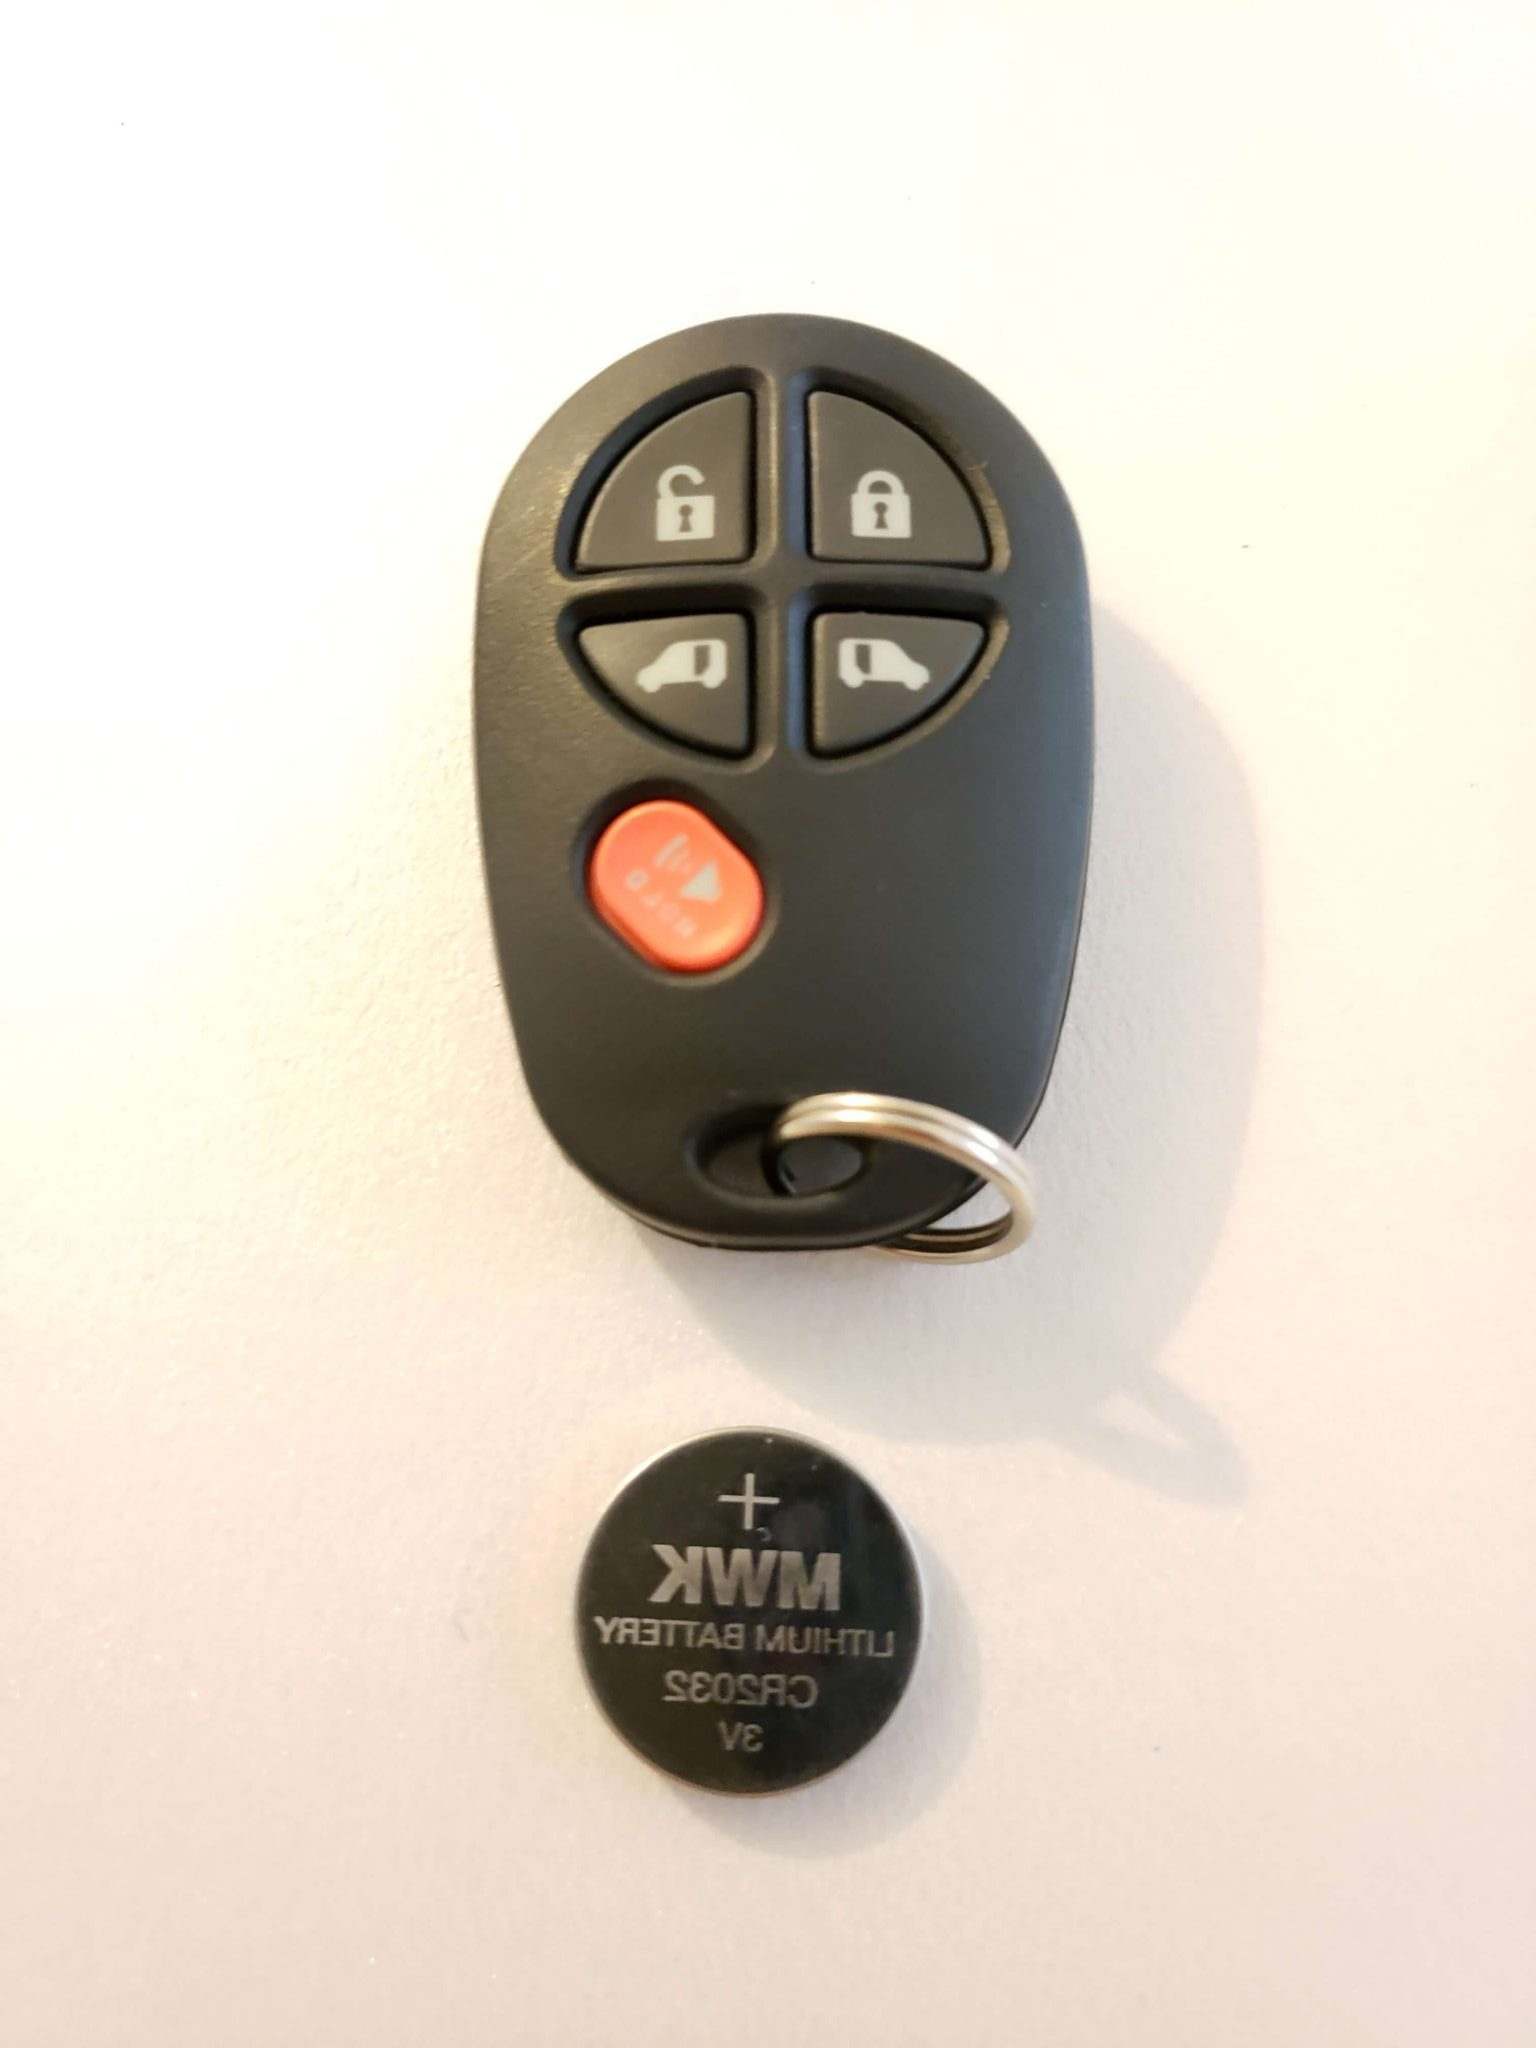 Car Key Replacement Cost India : Cost of Ownership ...